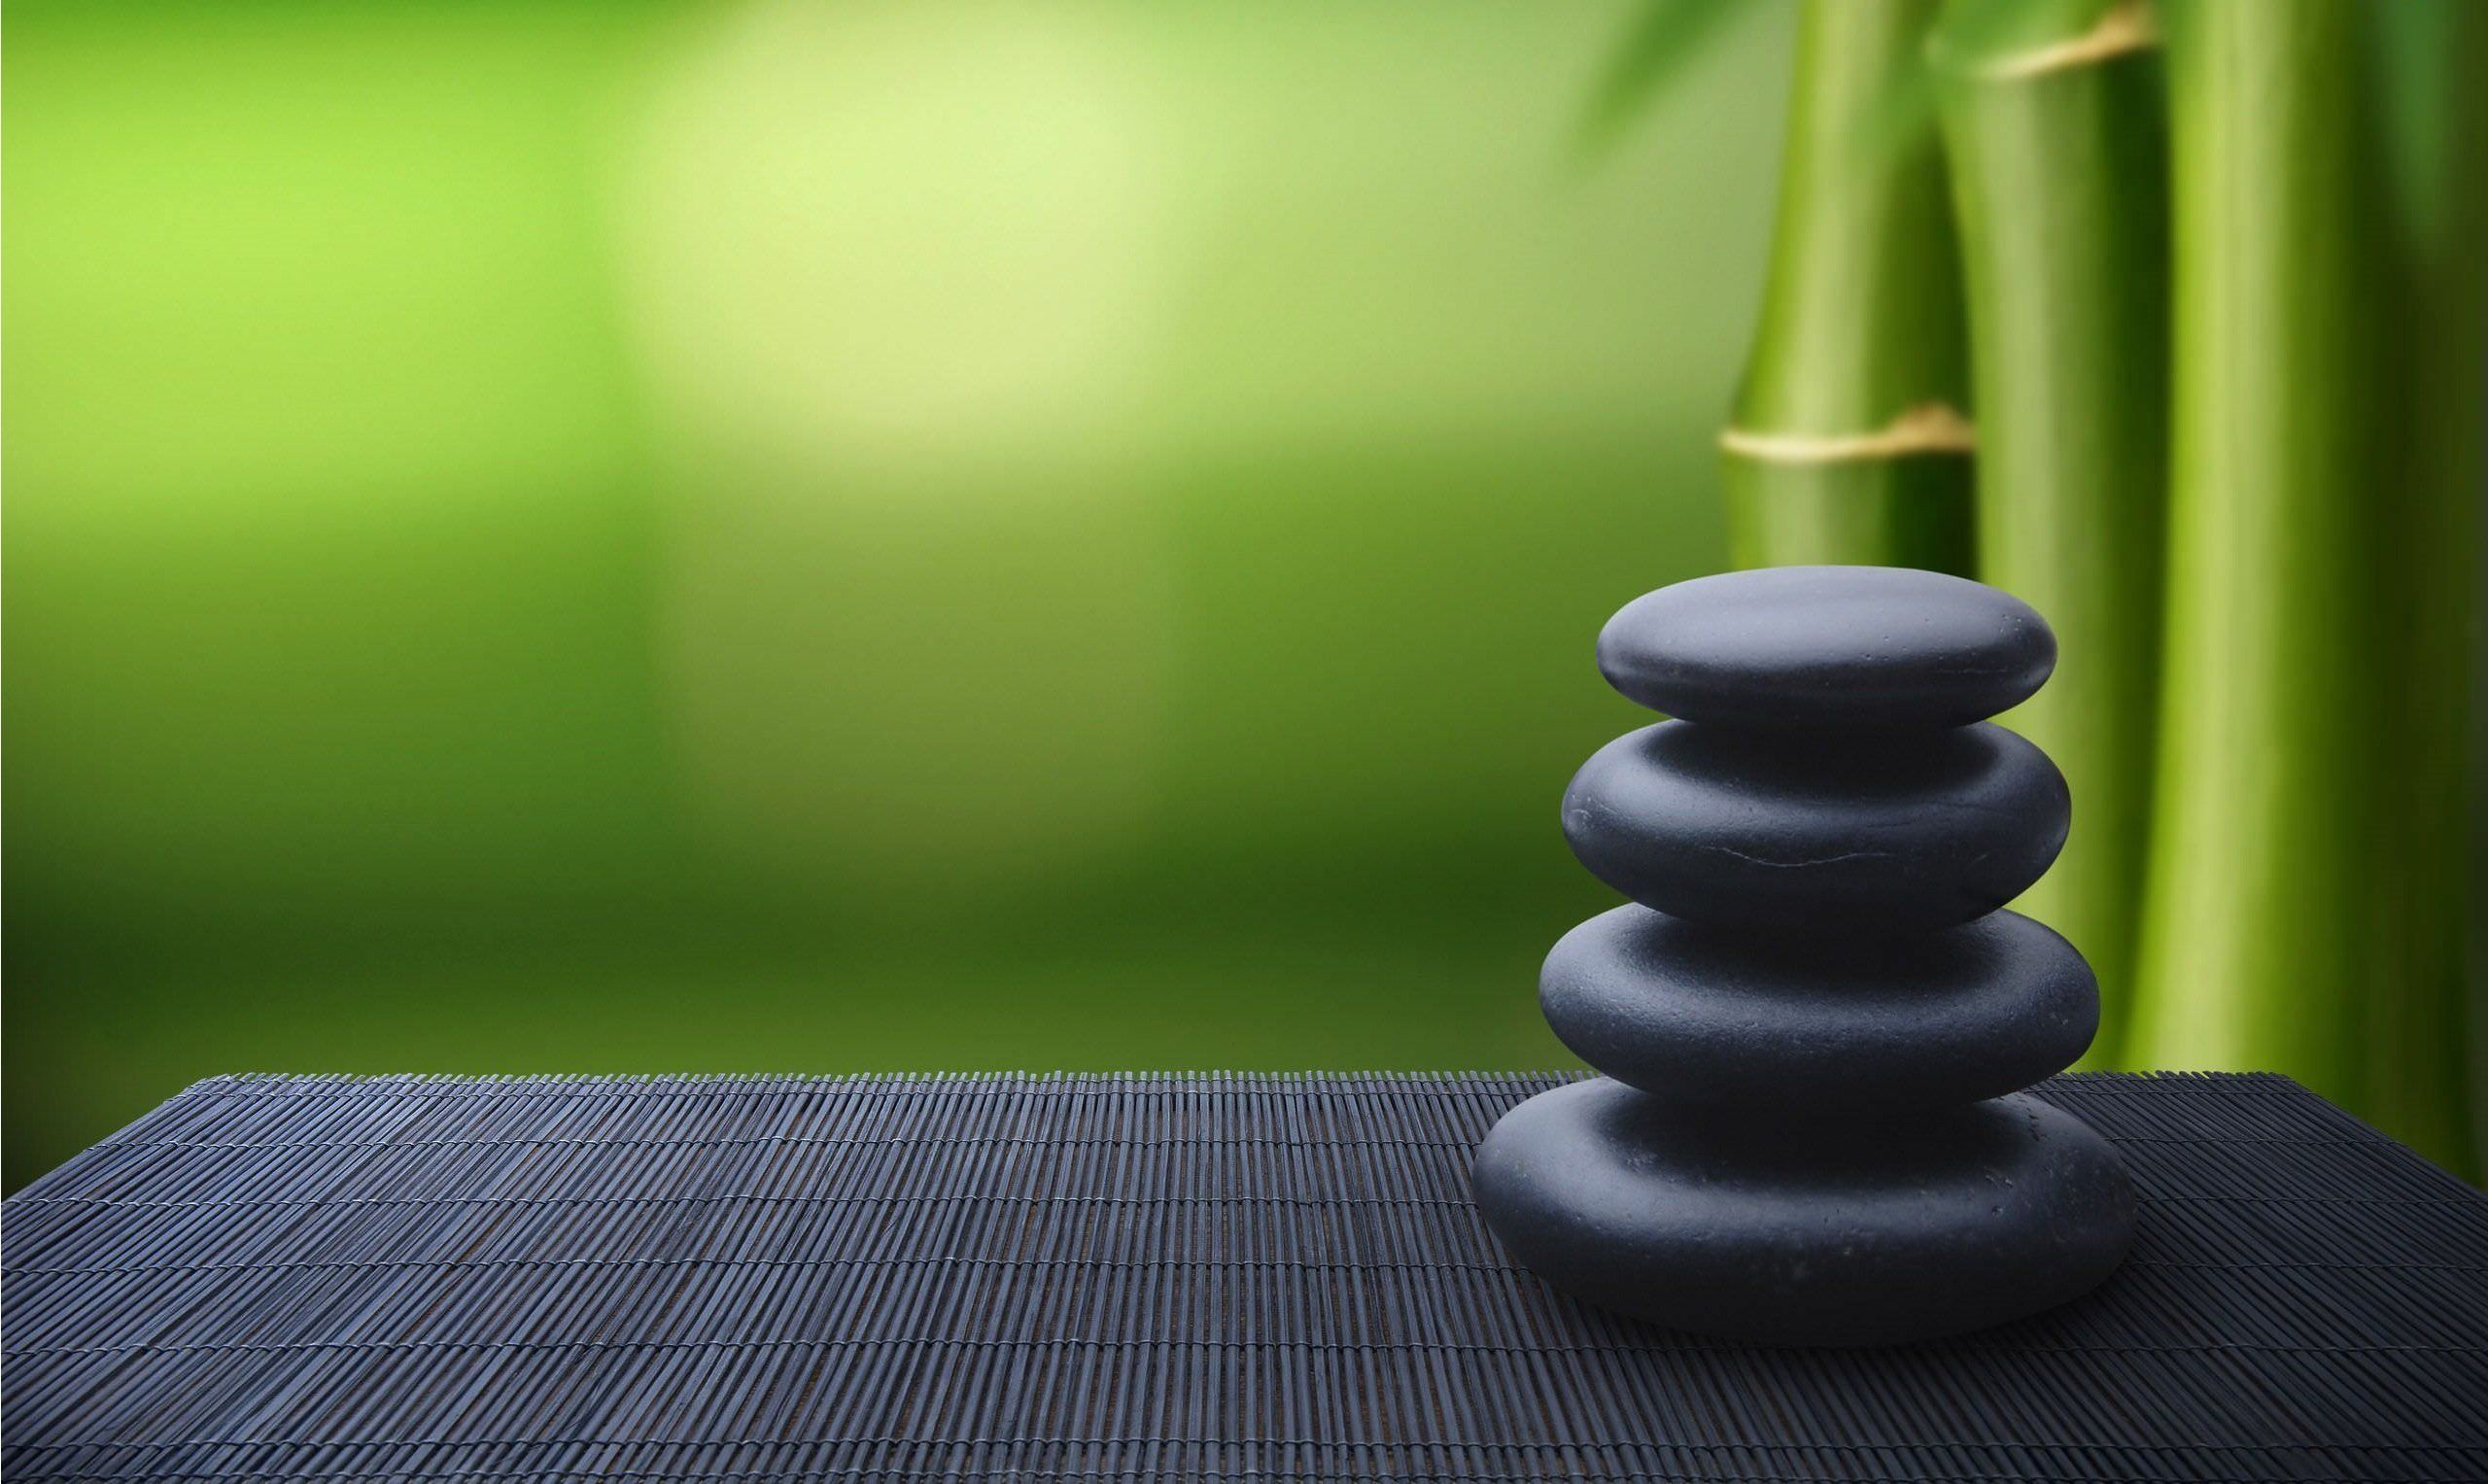 Zen Buddhist Wallpapers   Top Zen Buddhist Backgrounds 2560x1527